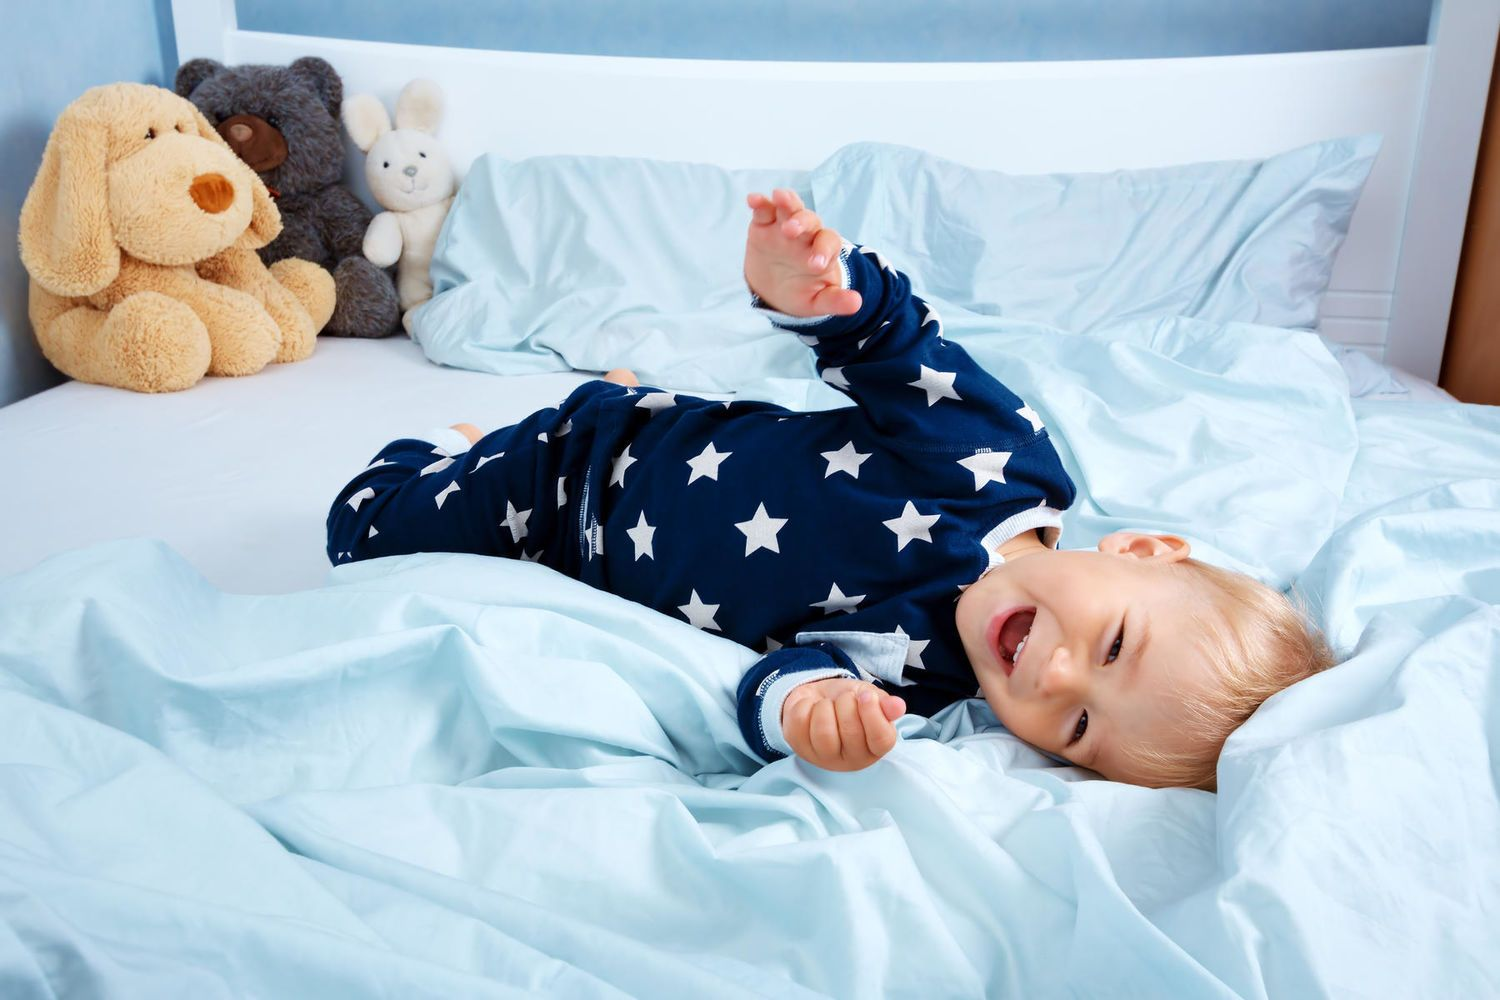 From Crib to Toddler Bed: How to Make The Transition